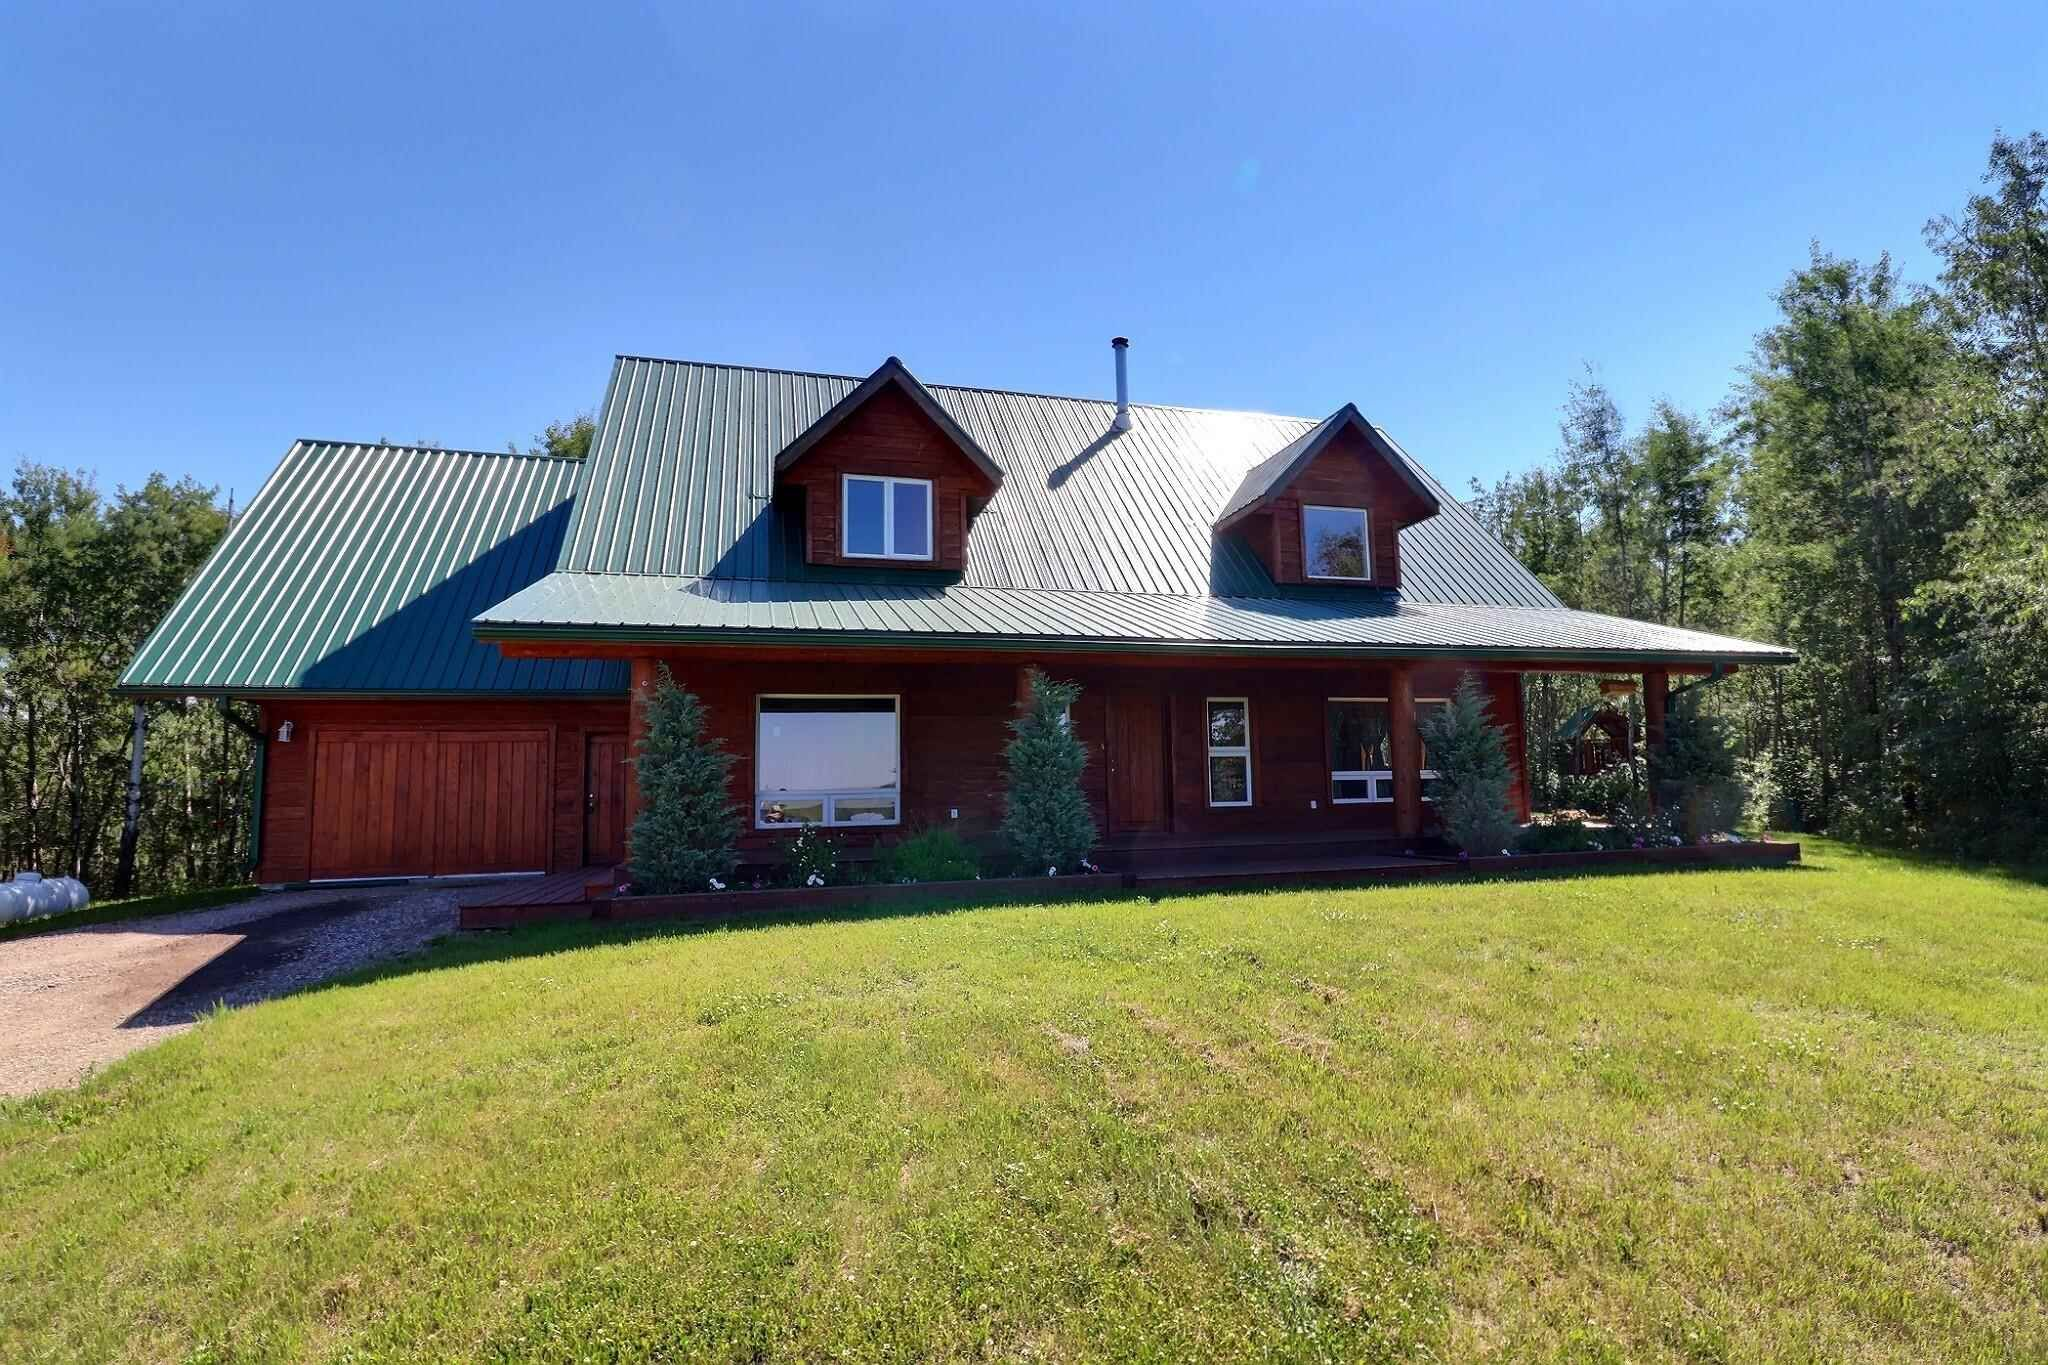 Main Photo: 11510 Twp Rd 584: Rural St. Paul County House for sale : MLS®# E4252512